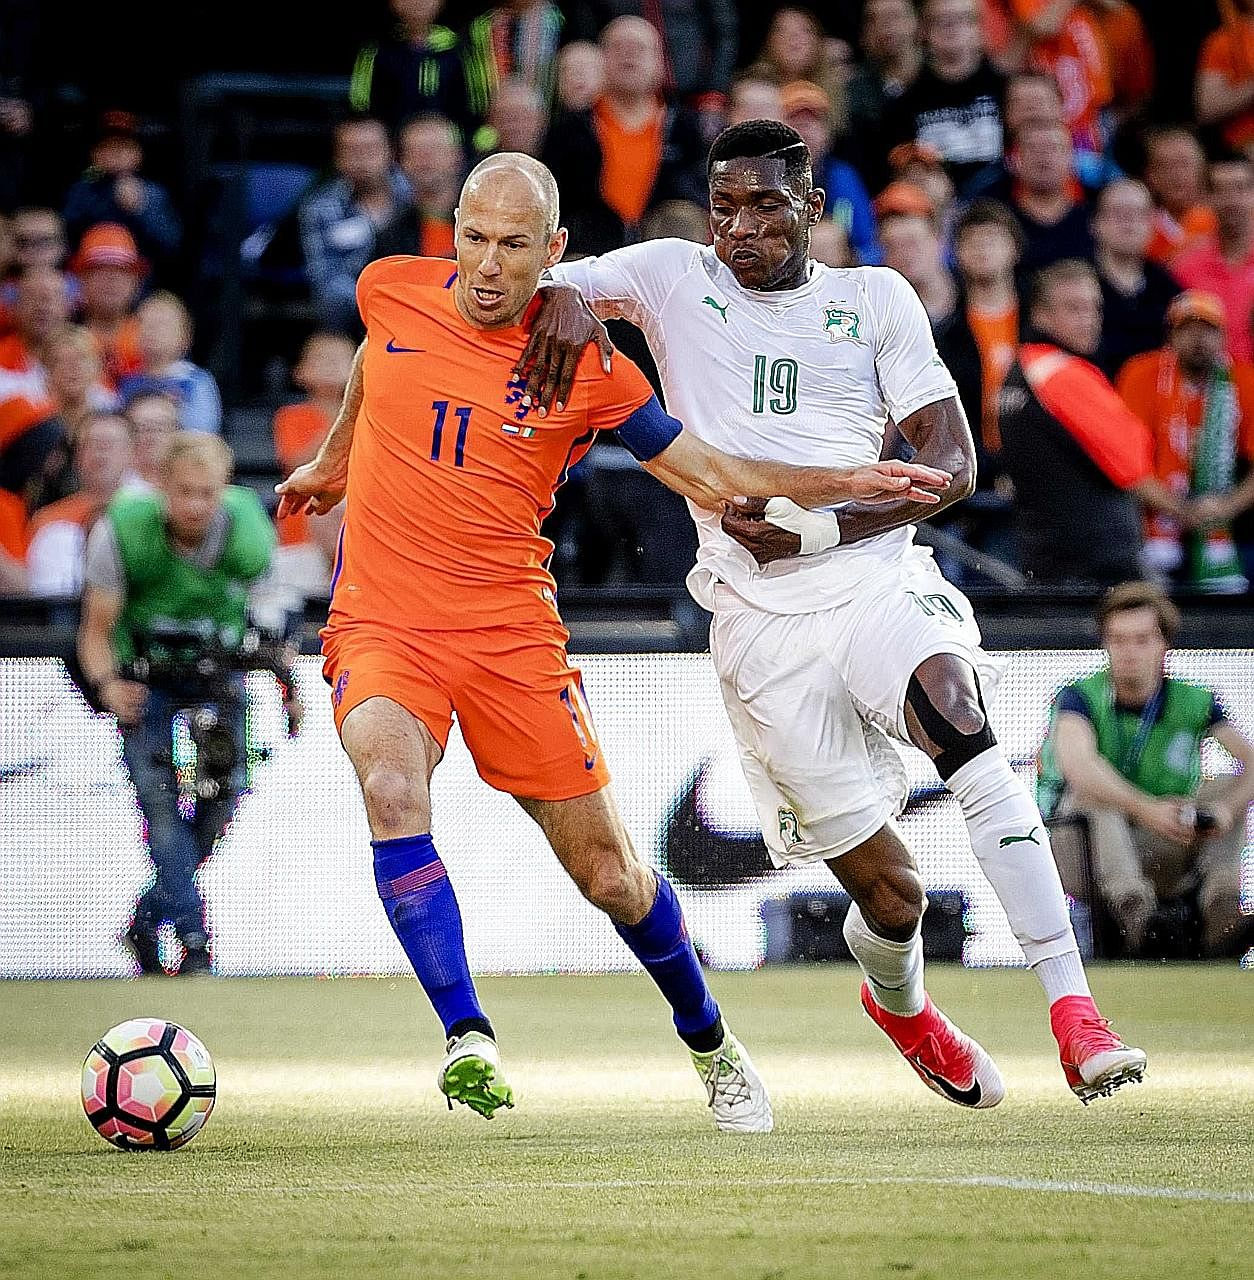 Netherlands captain Arjen Robben shielding the ball from Ivory Coast defender Simon Deli during a friendly in Rotterdam. The hosts won 5-0, with Robben scoring their second last Sunday.